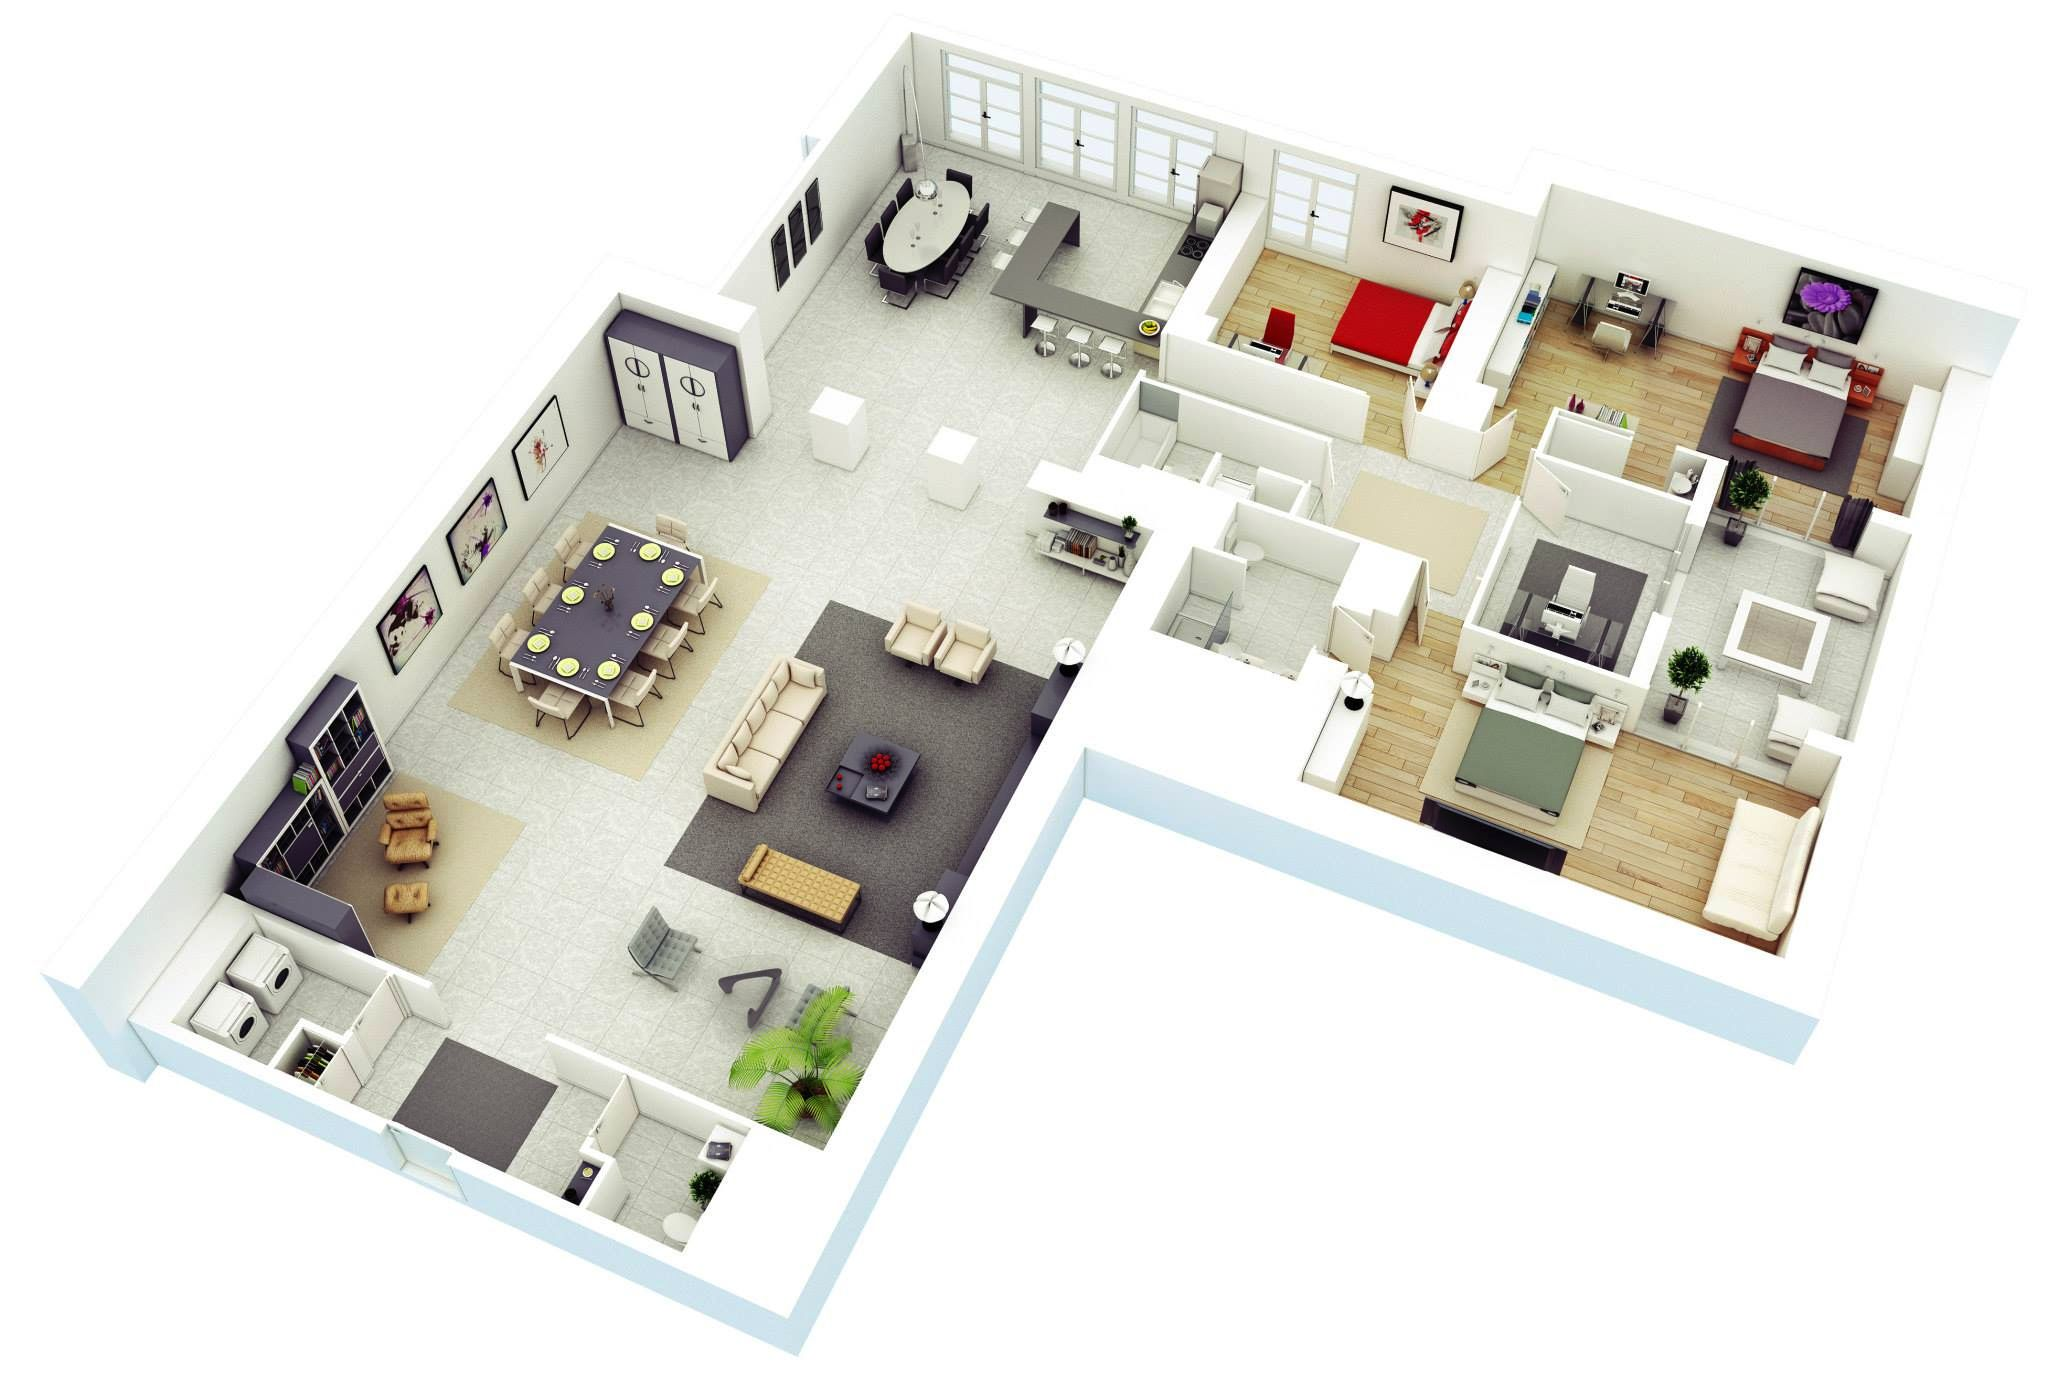 House Plans With Interior Photos Understanding 3d Floor Plans And Finding The Right Layout For You